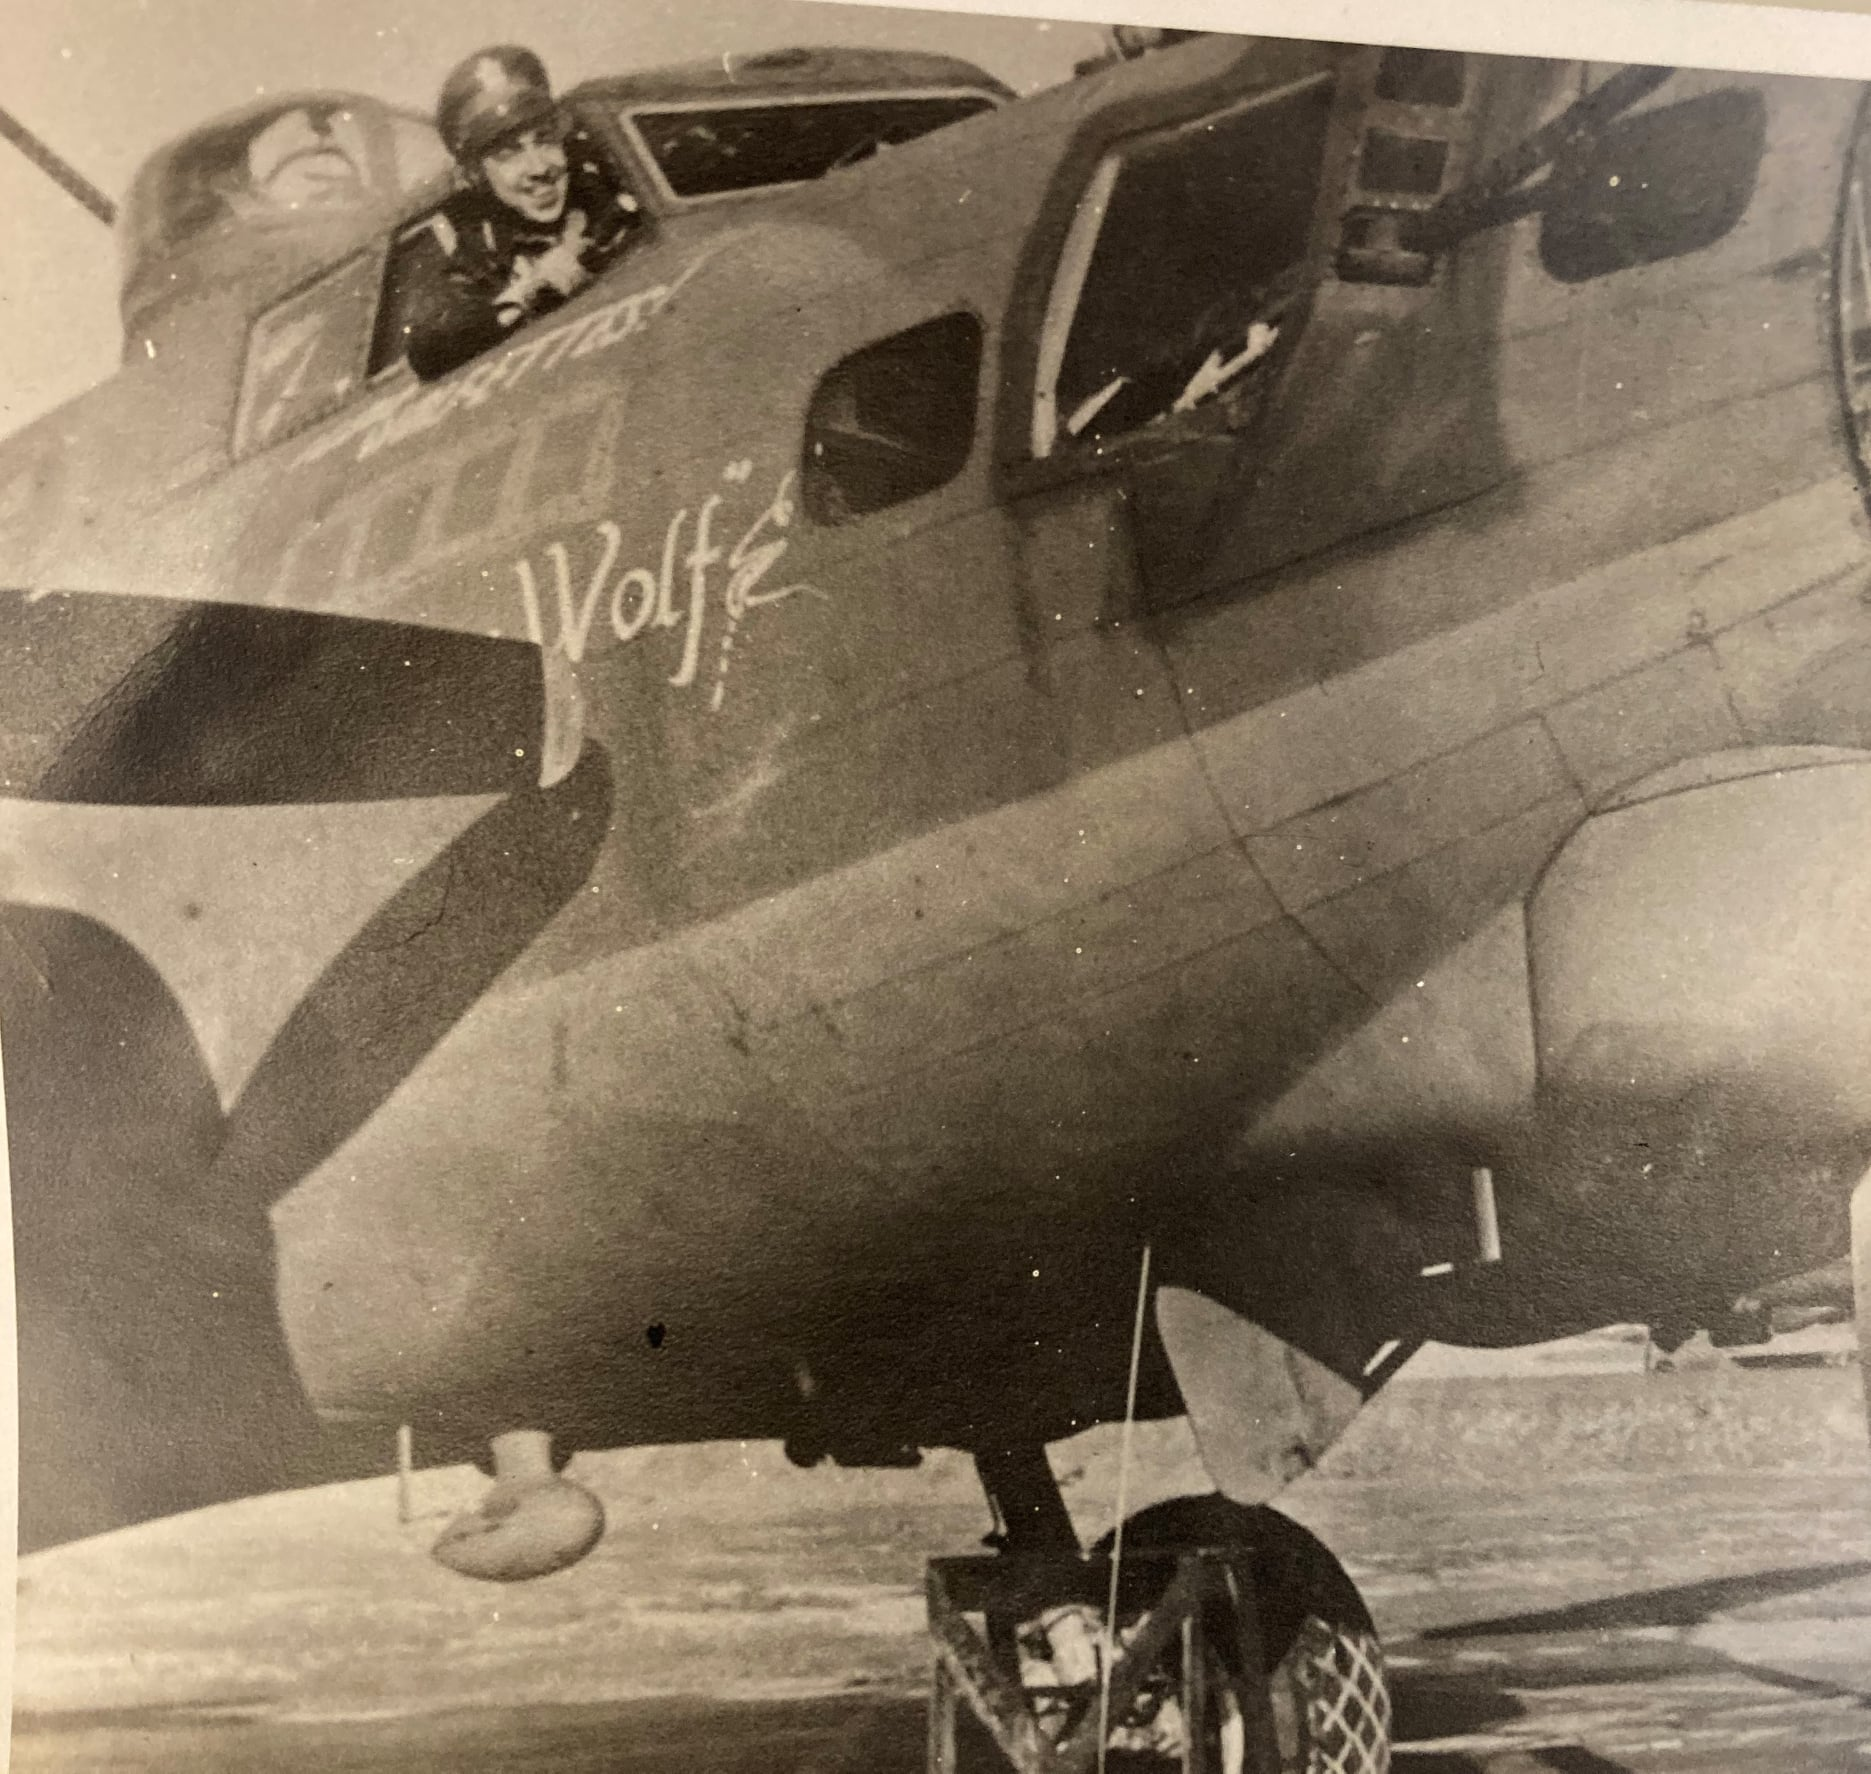 B-17 #42-39803 / The Wolf